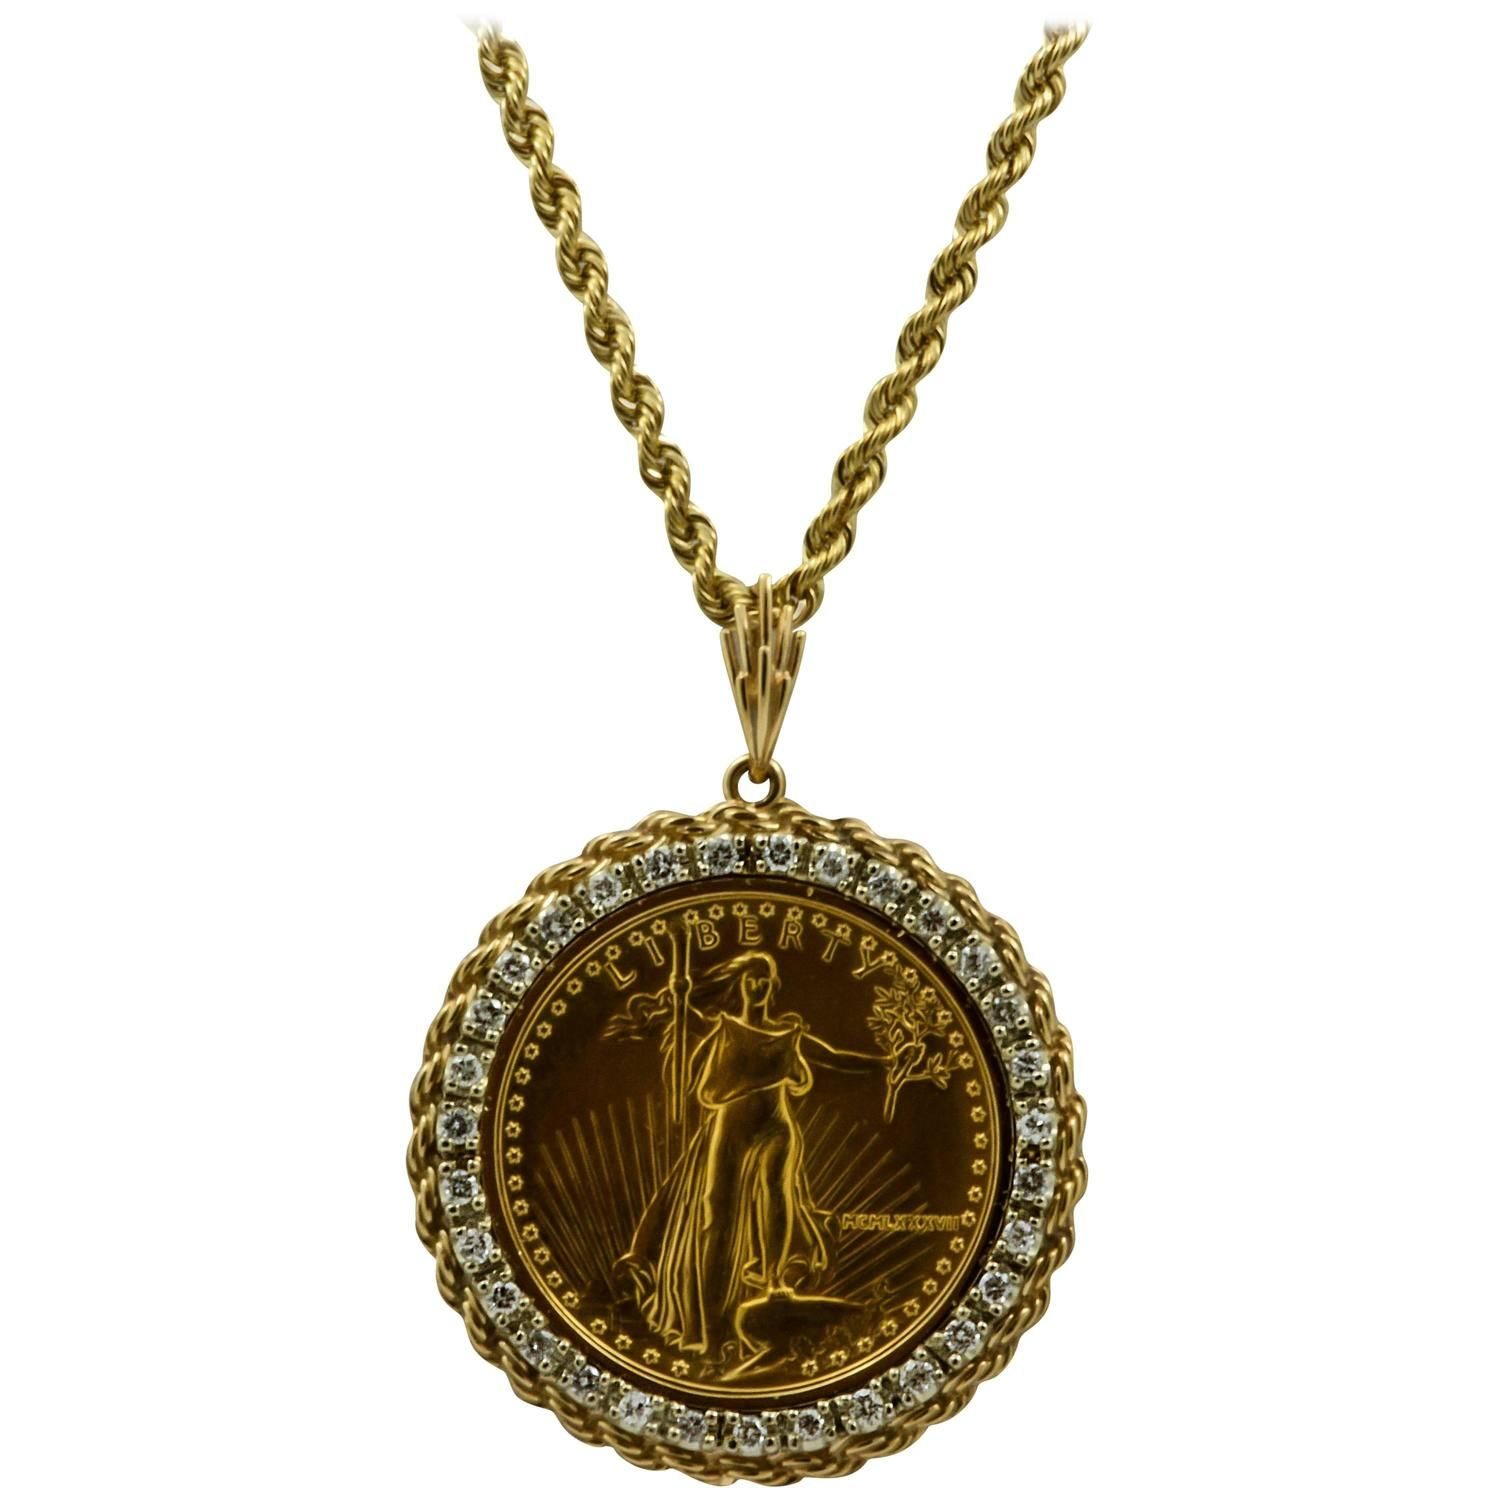 50 Liberty 1 Ounce Gold Coin Pendant With Diamond Bezel 1stdibs Com Coin Pendant Coin Jewelry Gold Coins